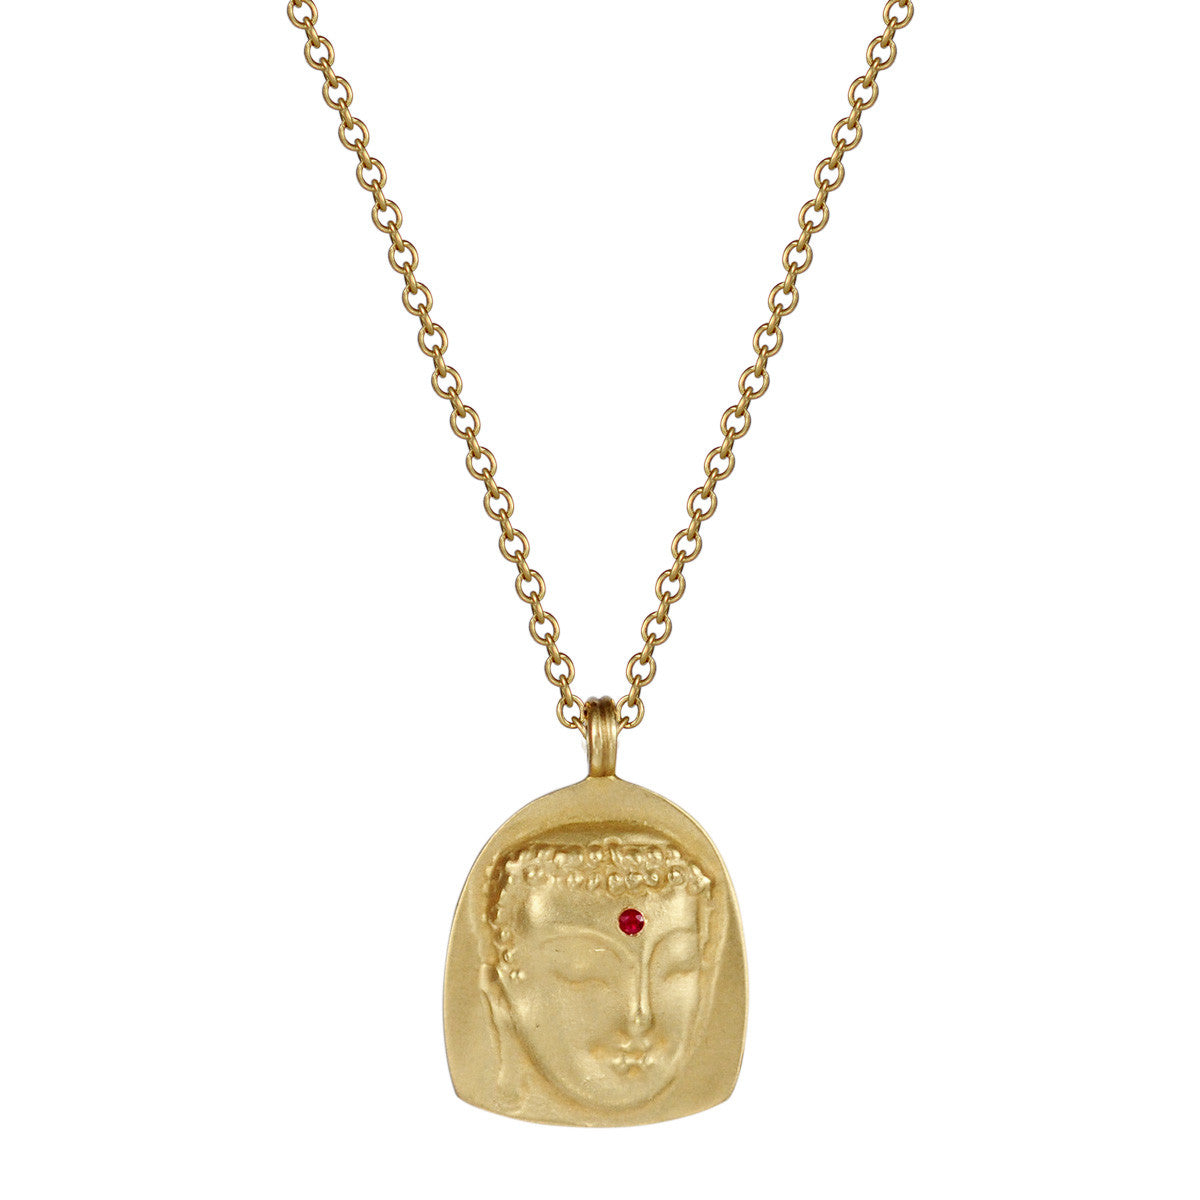 18K Gold Repouss̩é Buddha Pendant with Ruby